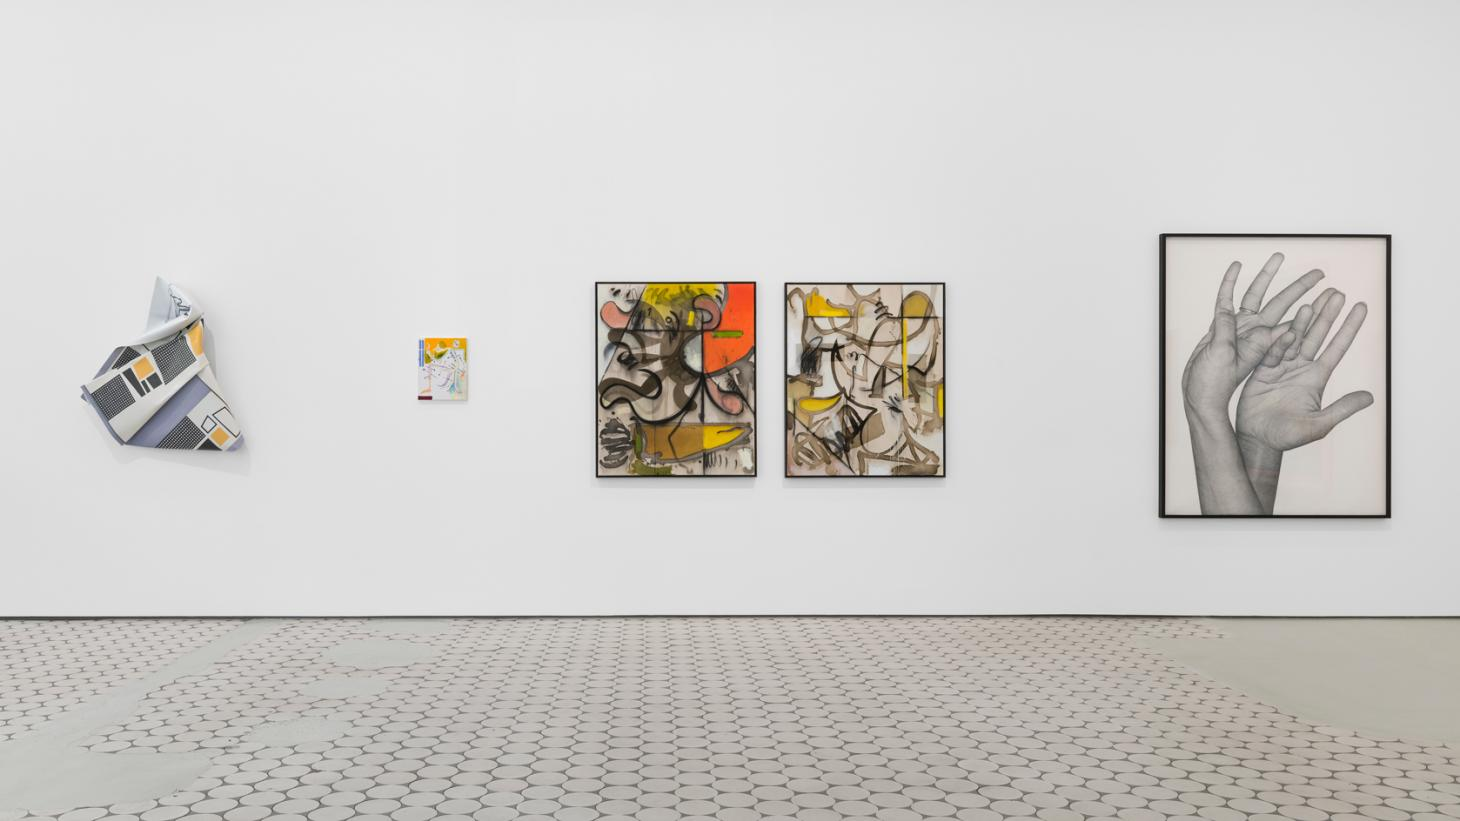 Installation view of paintings and wall pieces in Wentrup gallery's Zoom in – Zoom out exhibition in Berlin